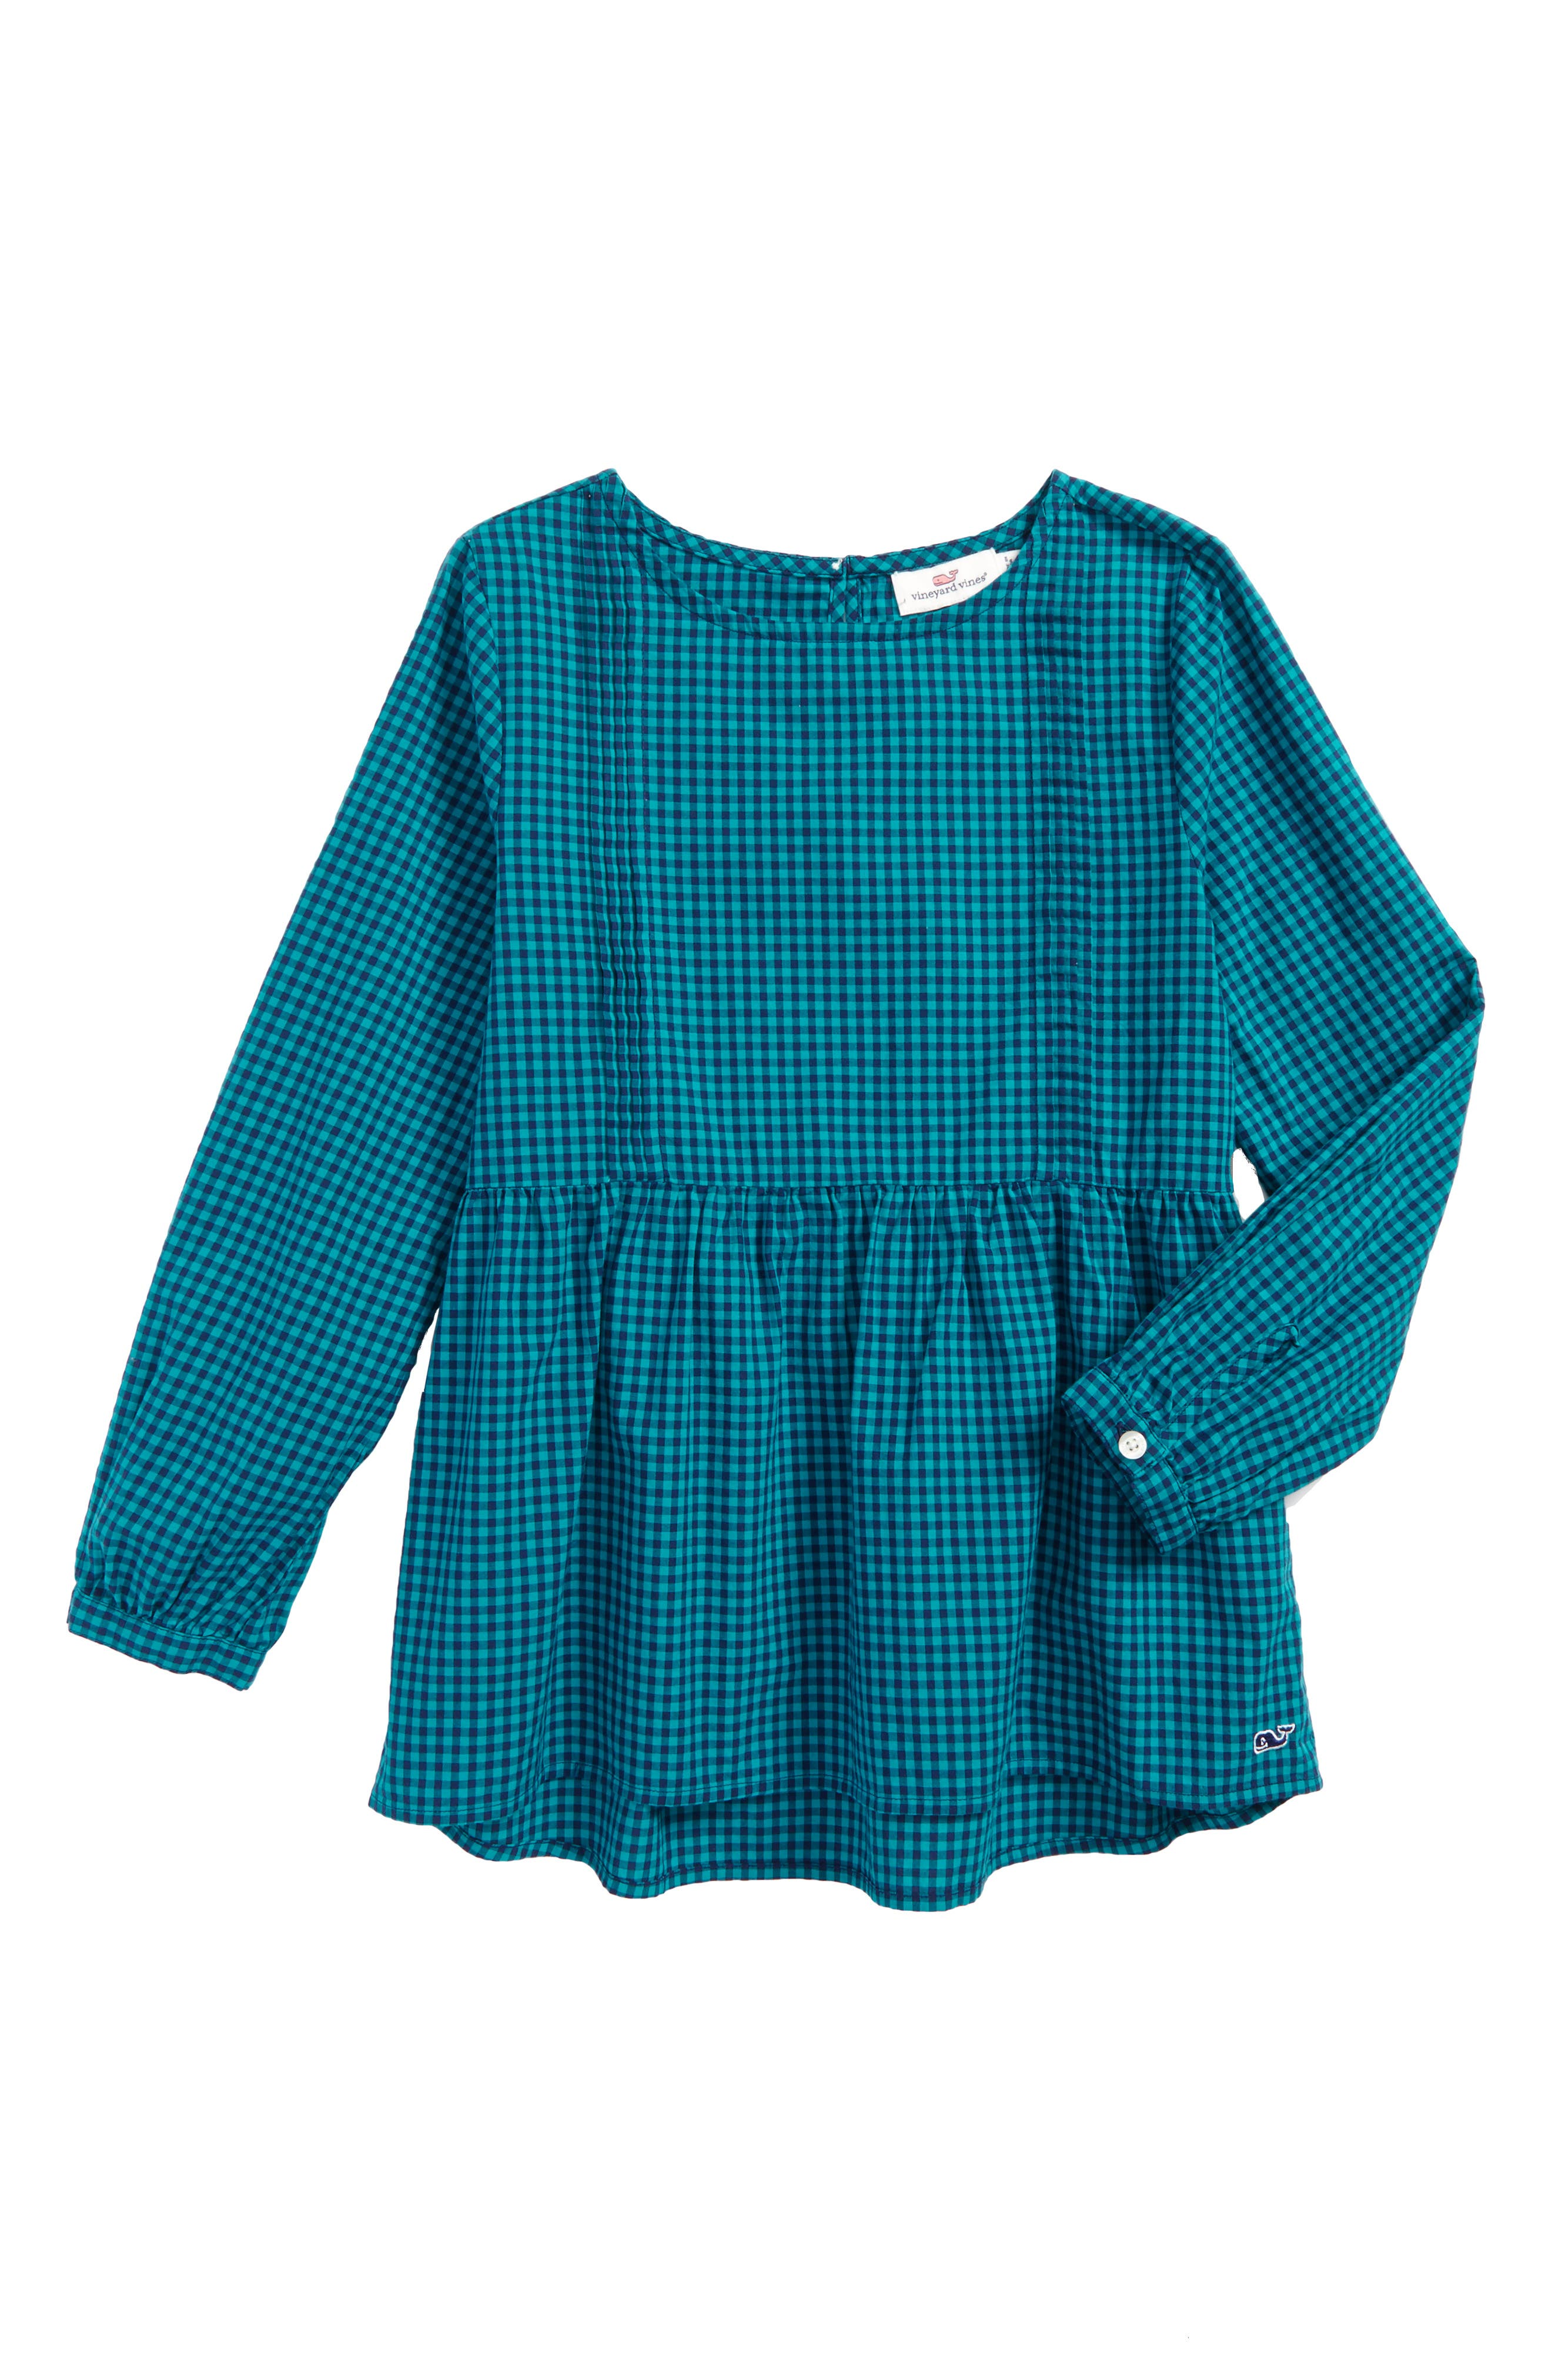 Gingham Woven Top,                         Main,                         color, Turquois Sea